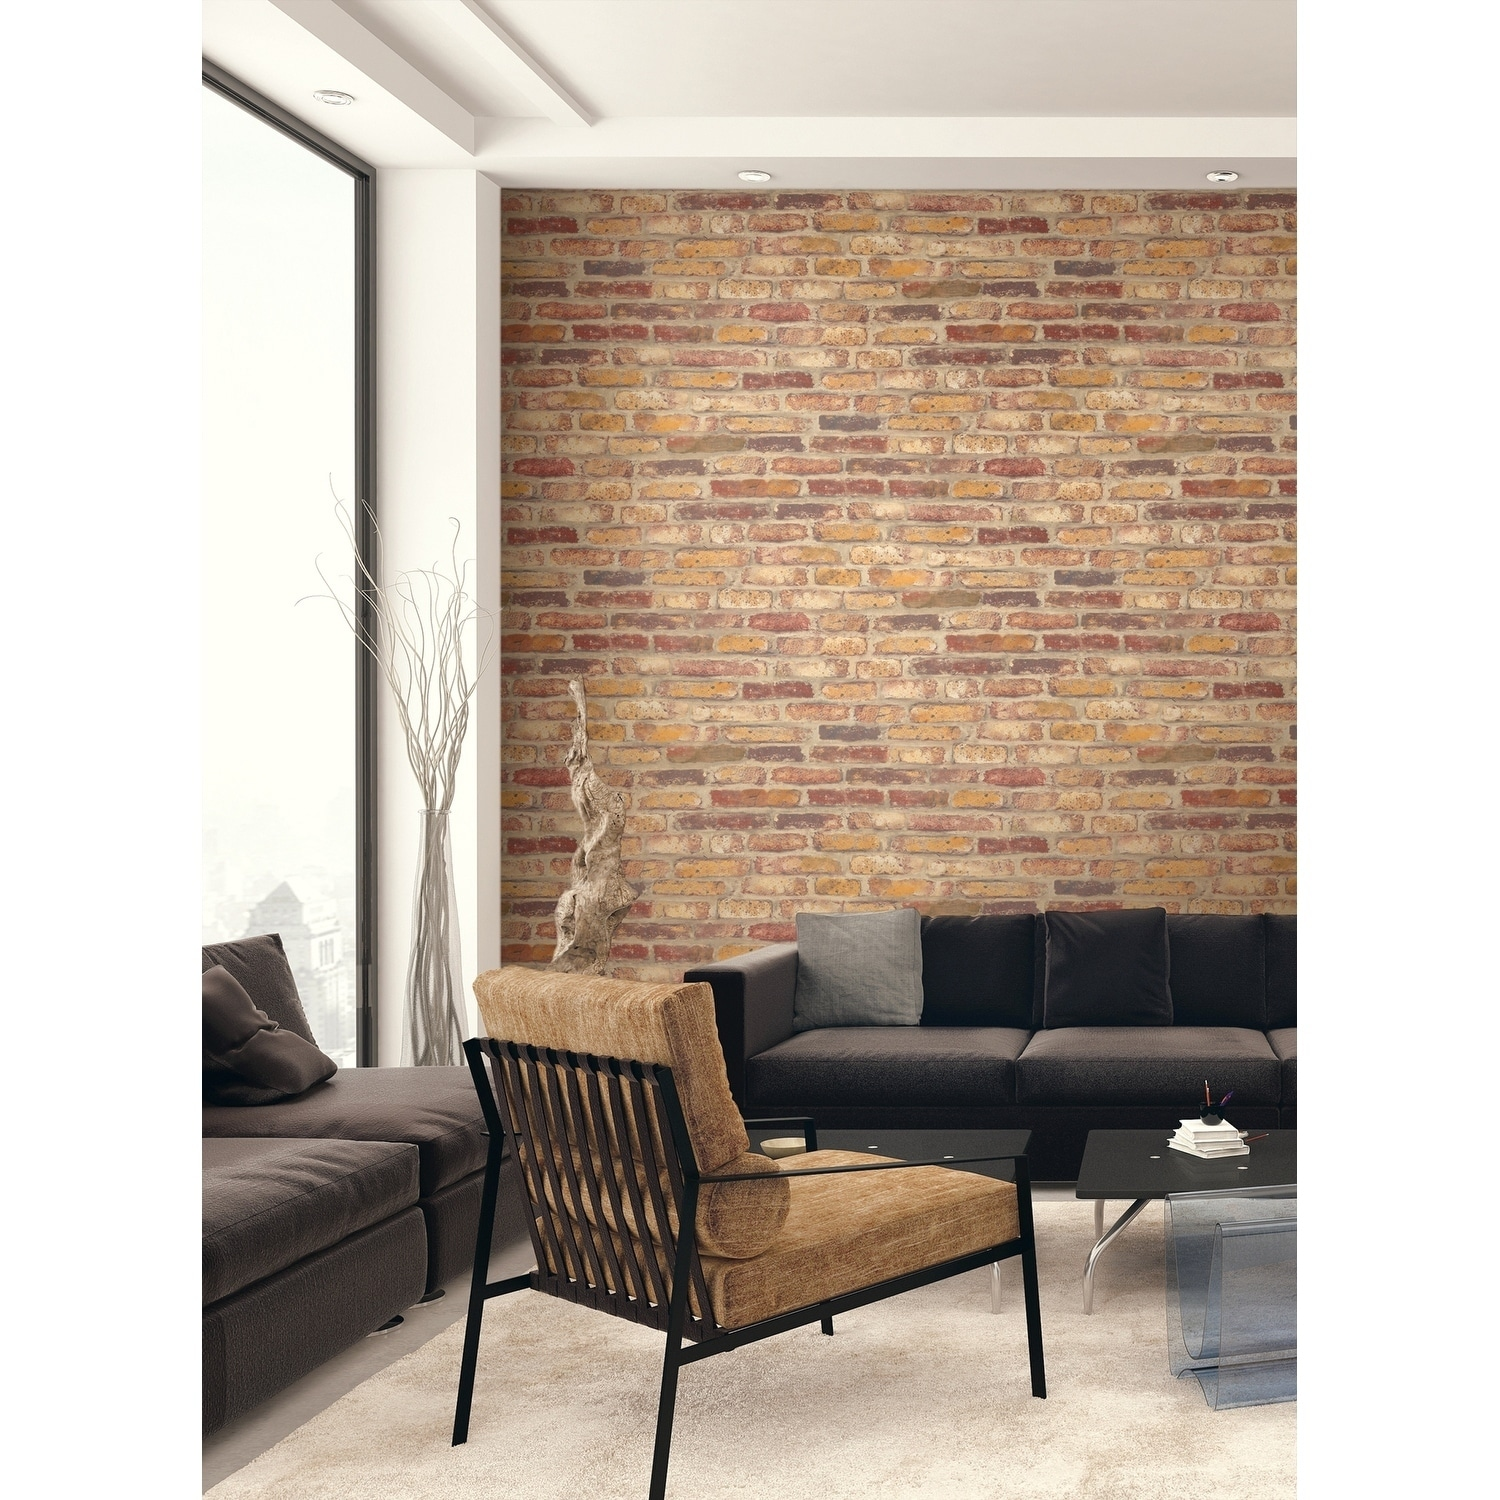 Shop Nextwall Red Faux Rustic Brick Peel And Stick Removable Wallpaper 20 5 In W X 18 Ft L Overstock 31027063